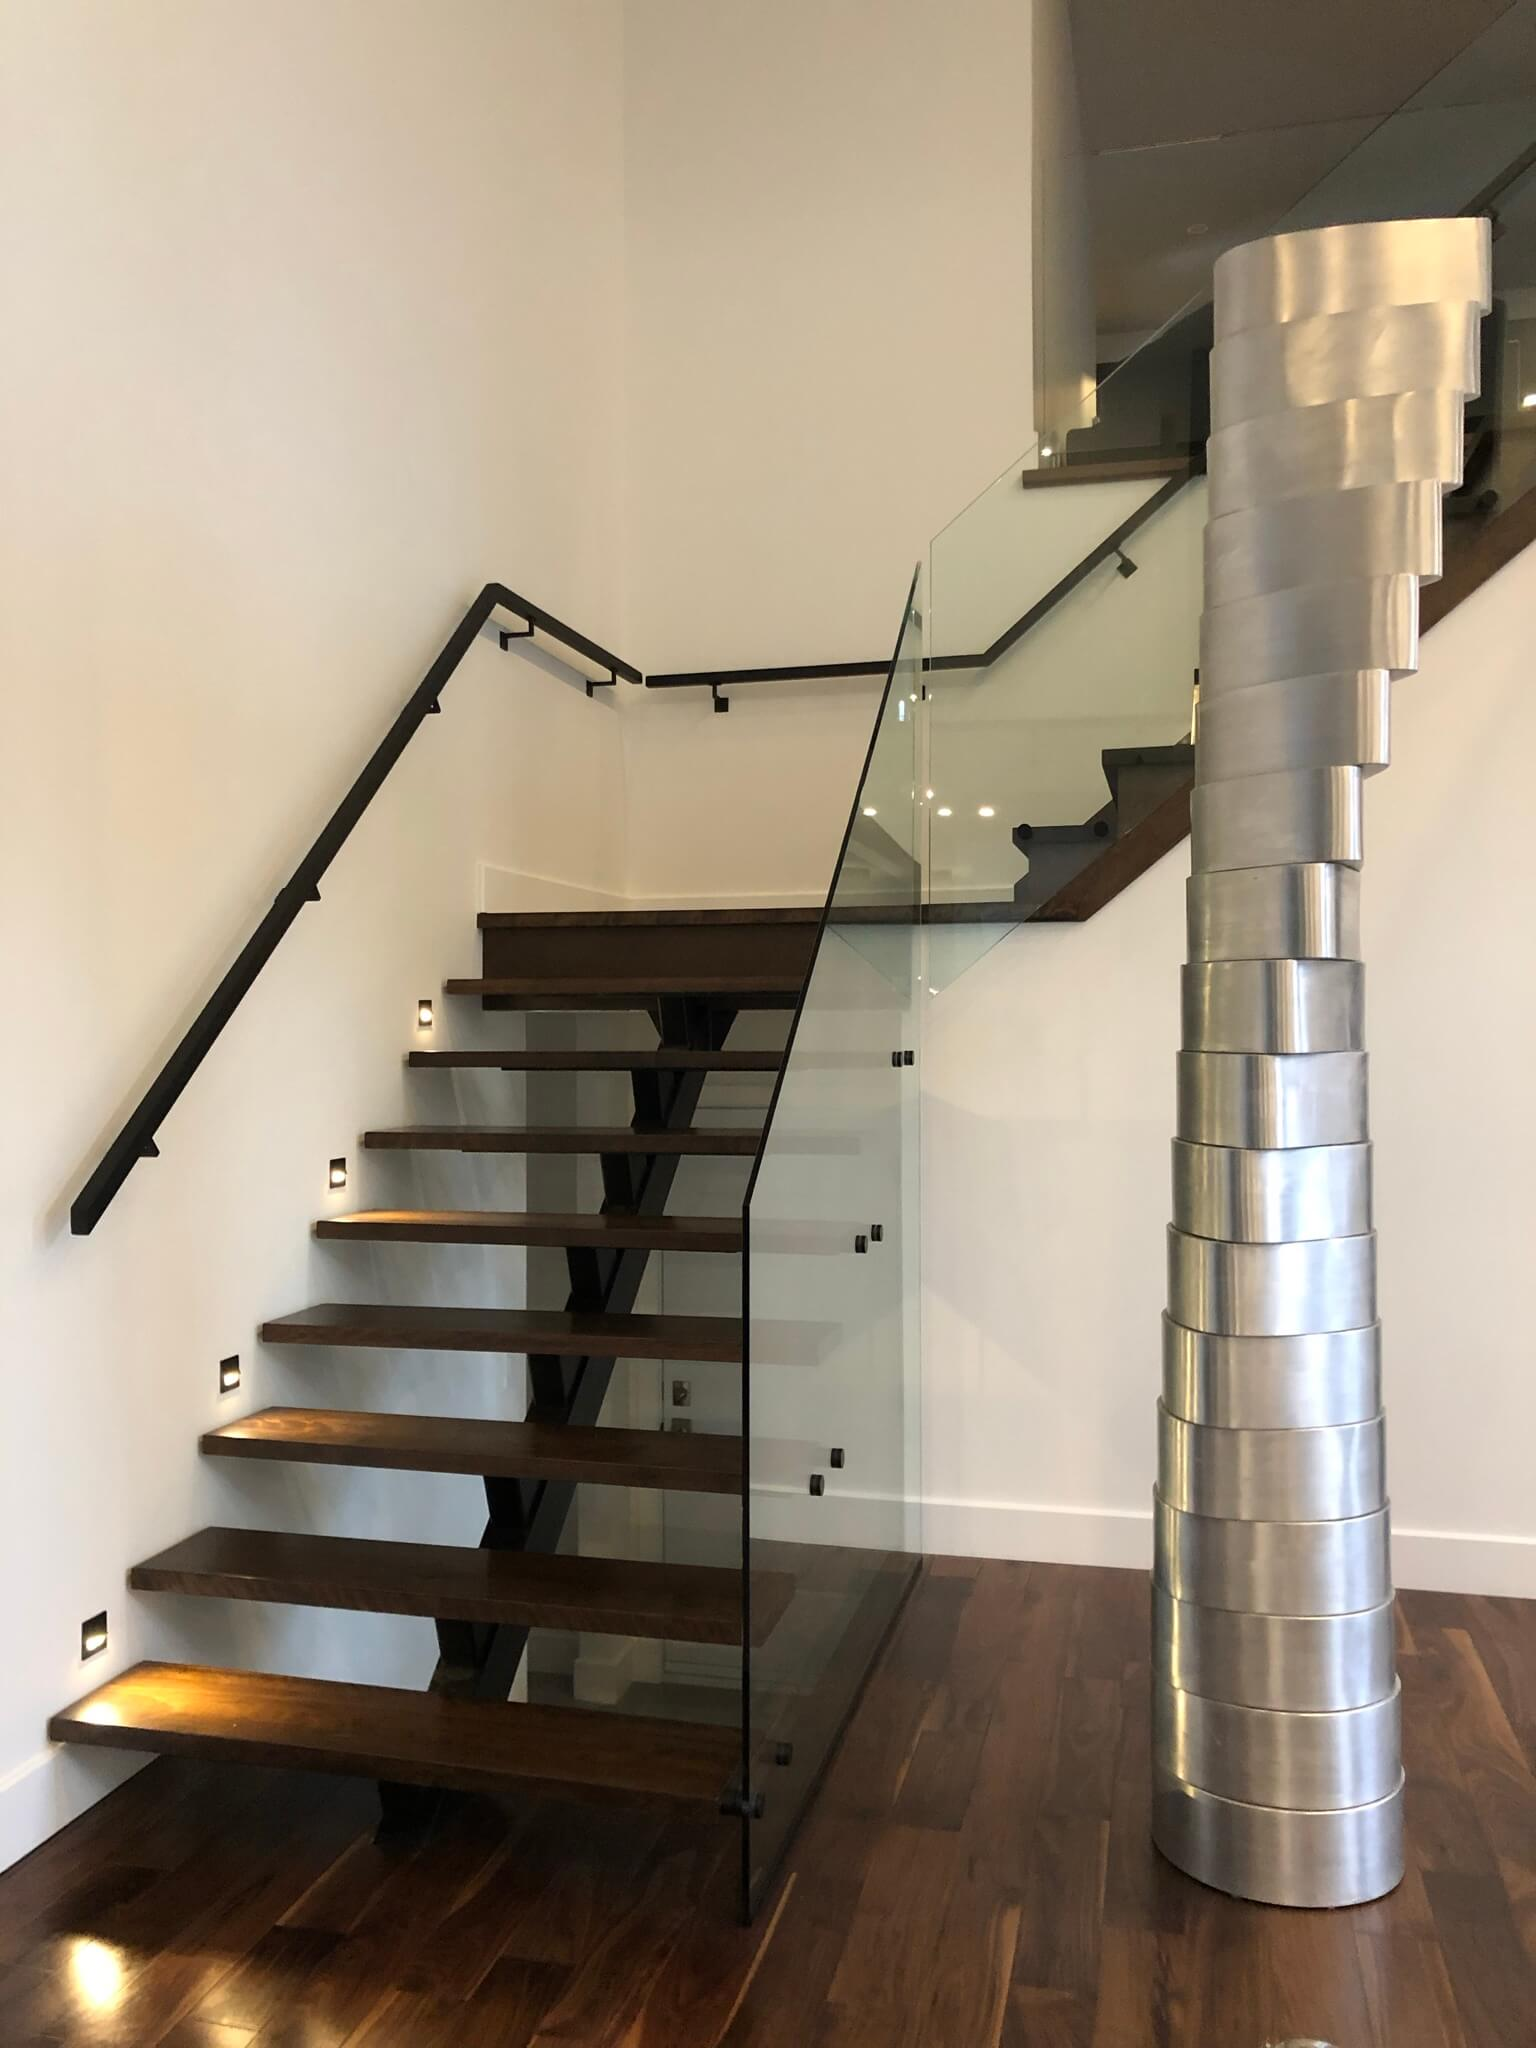 Glass railing staircase with stand-off